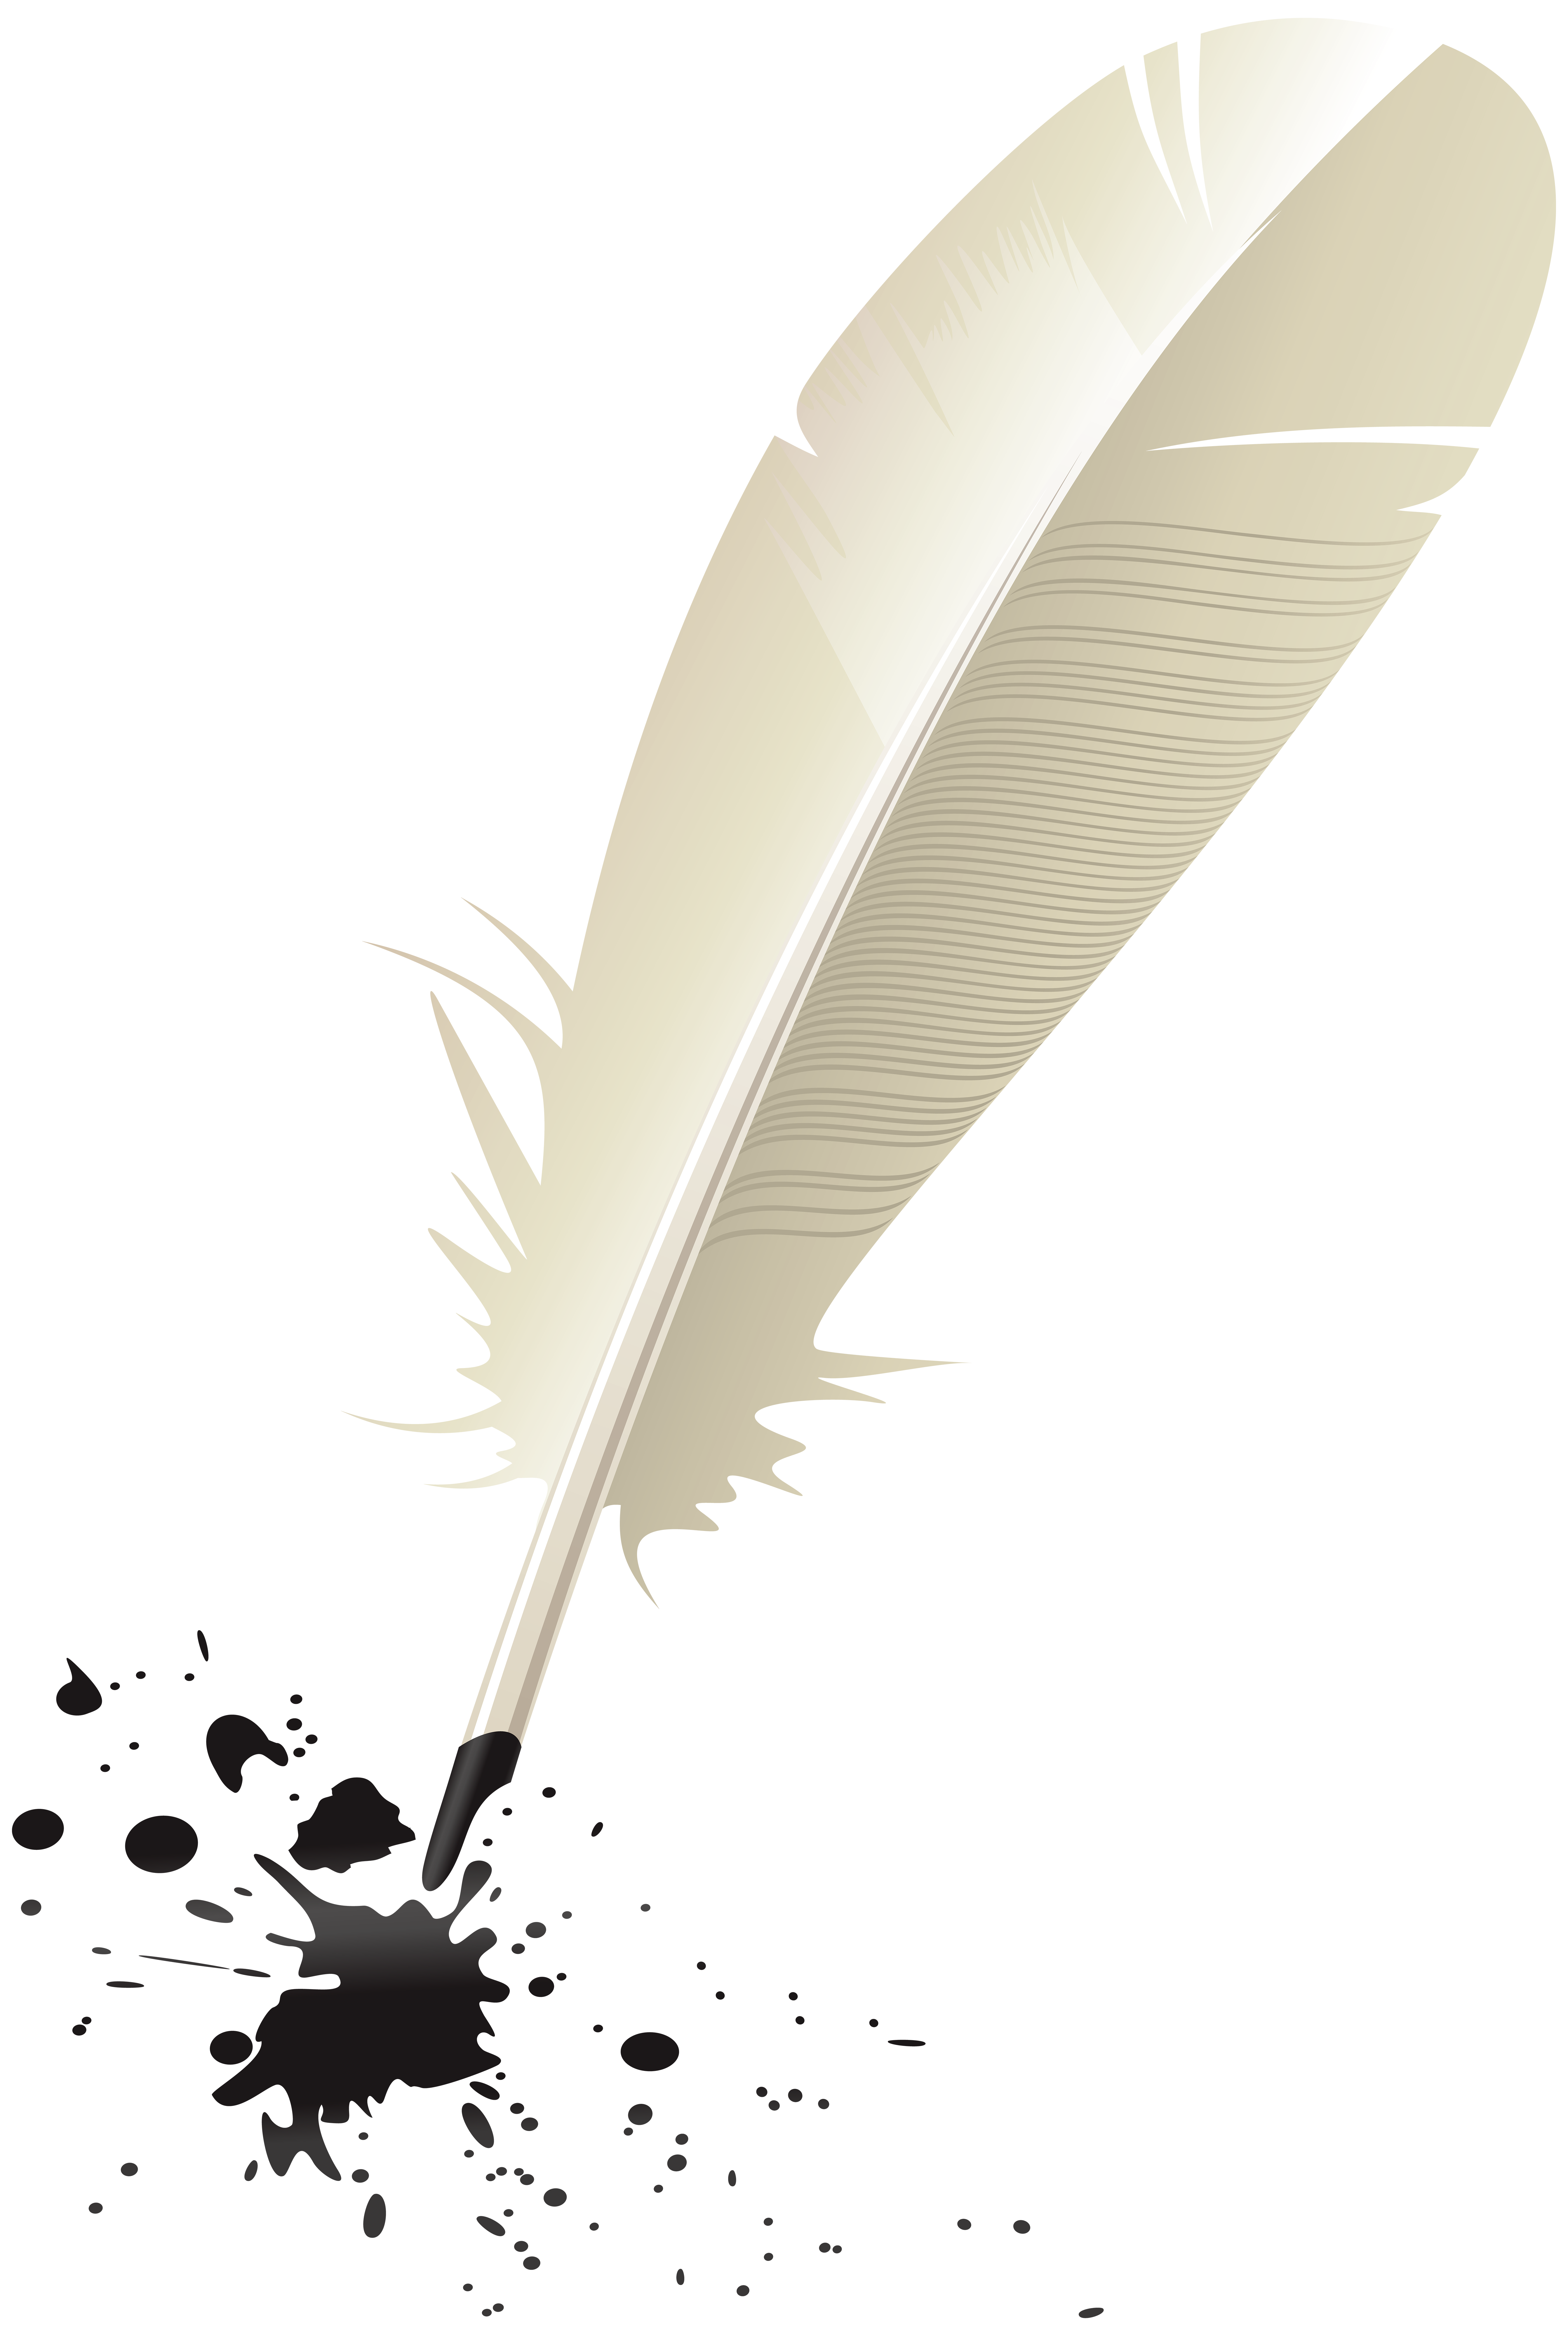 Quill and Ink PNG Clip Art Image.